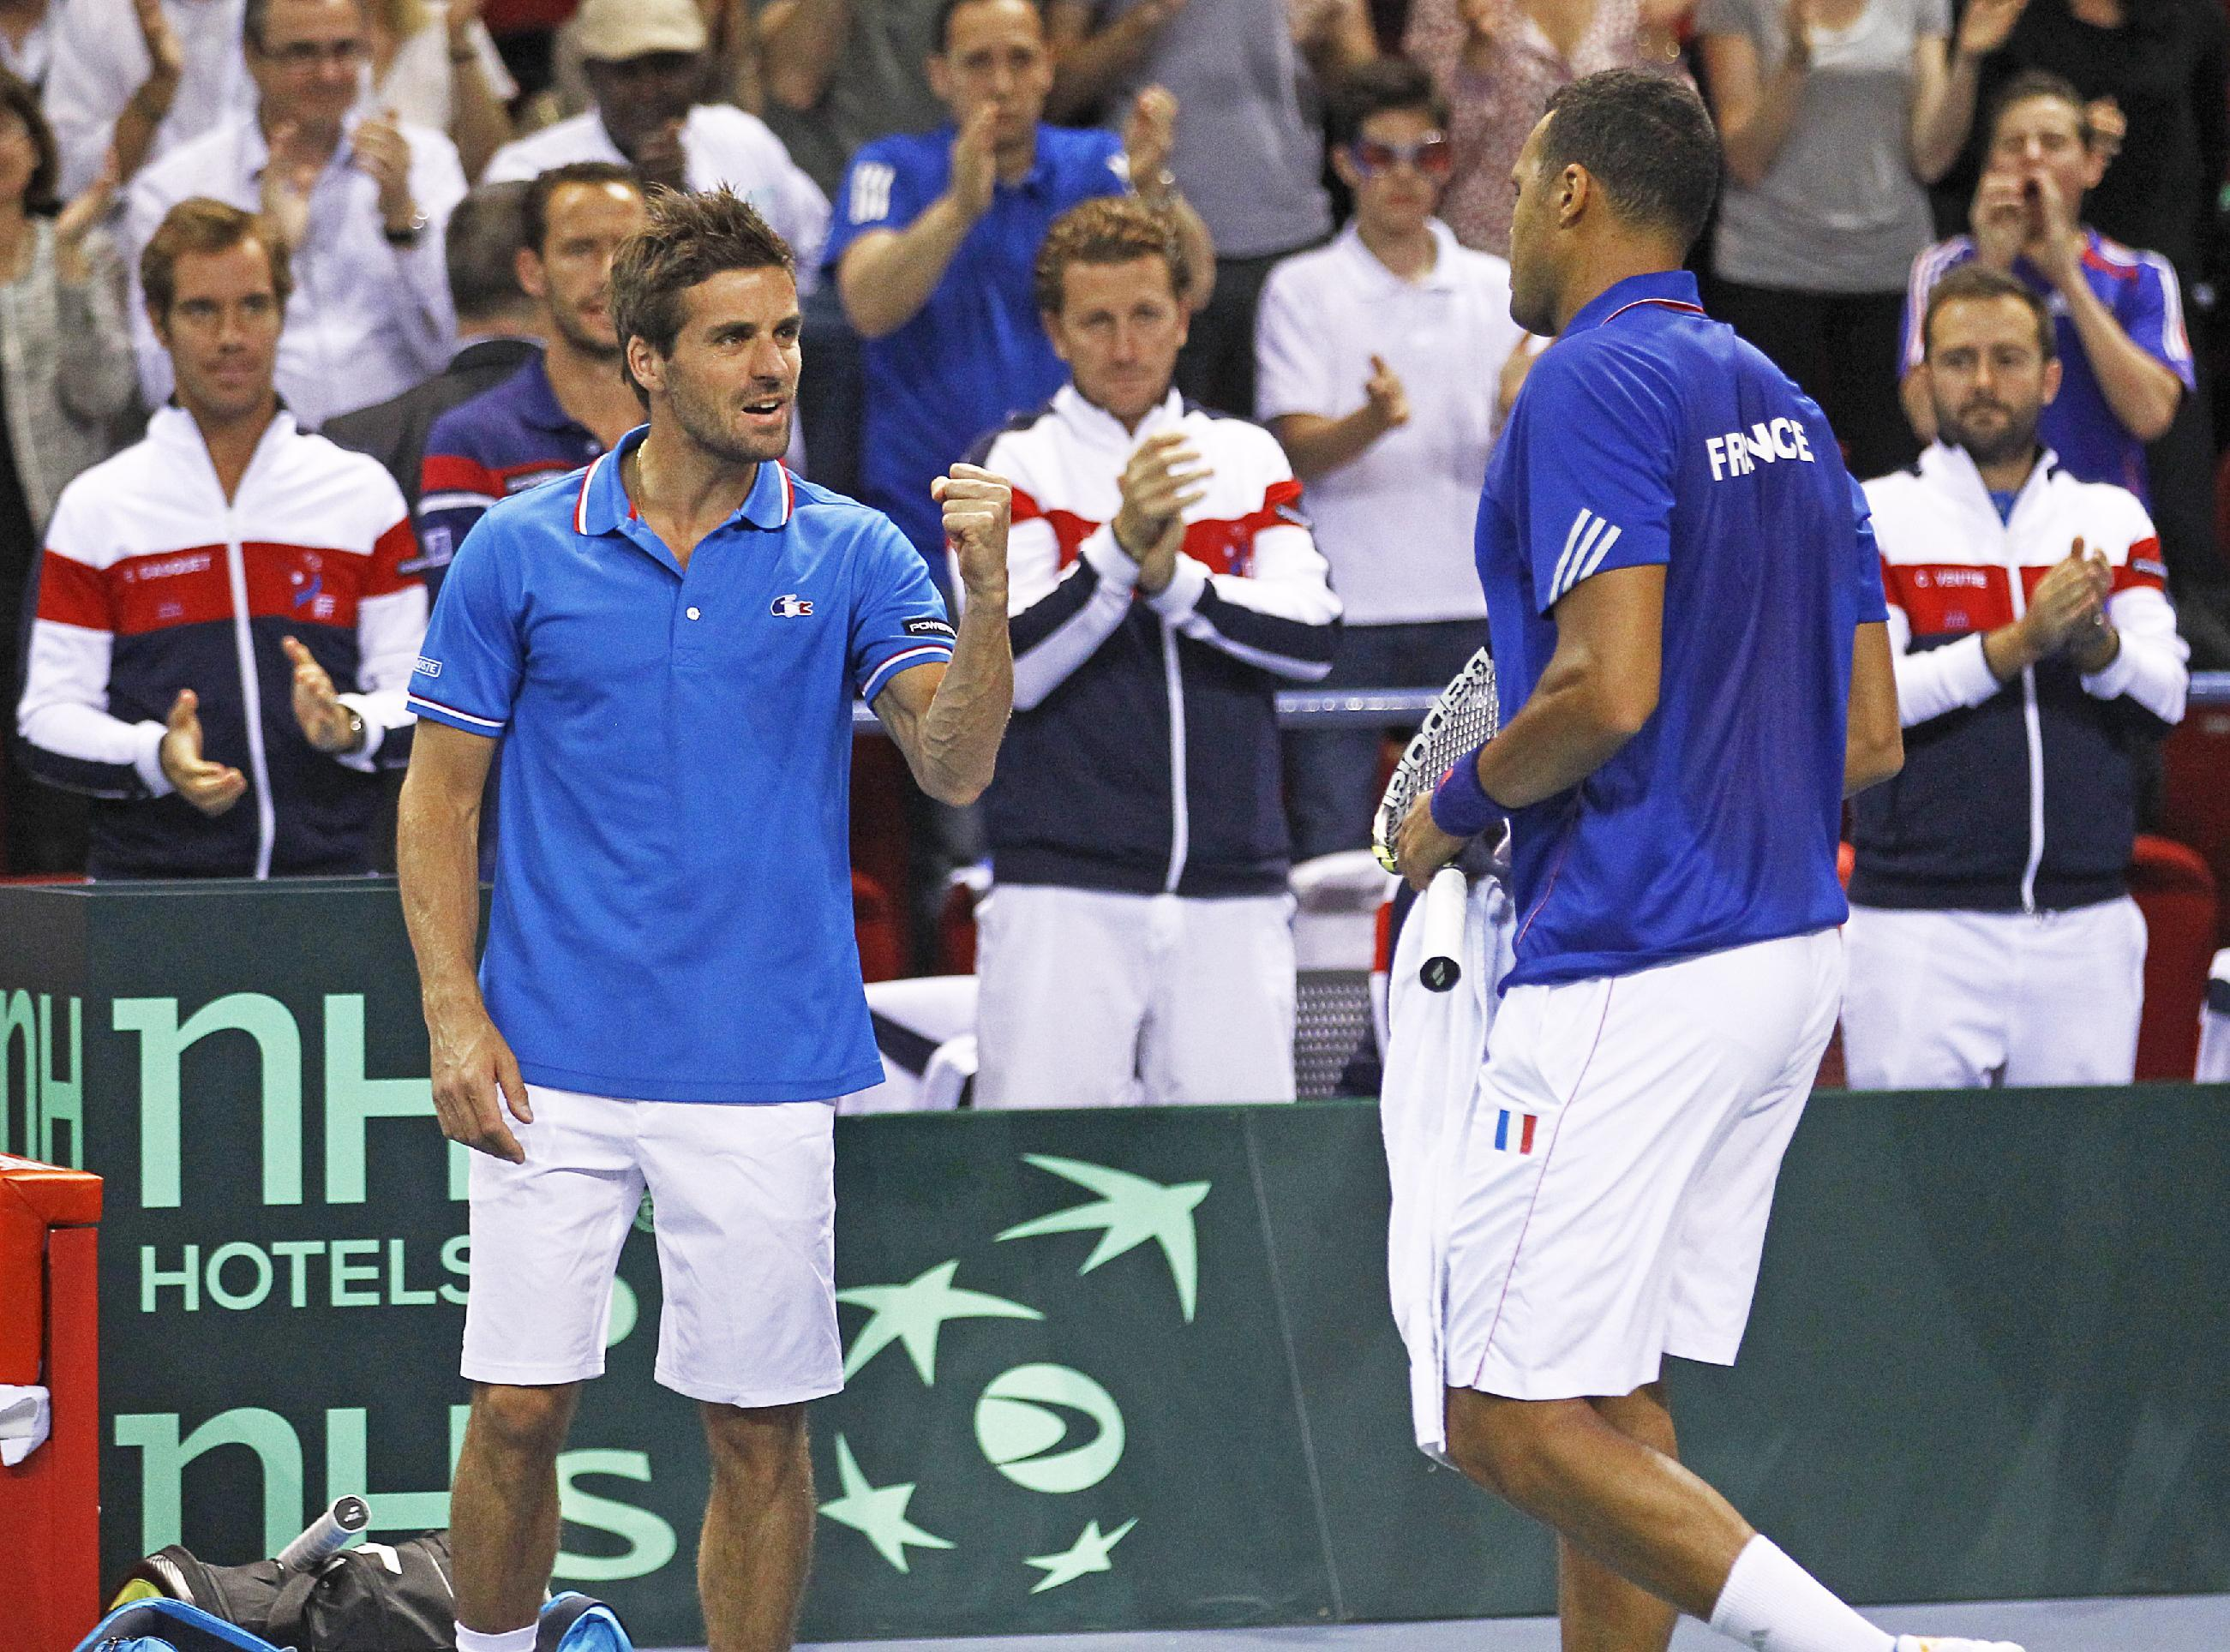 French tennis player Jo-Wilfried Tsonga, right, gets encouragements from French team coach Arnaud Clement, left, during his single match against German player Tobias Kamke, in the quarterfinals of the Davis Cup between France and Germany, in Nancy, eastern France, Sunday April 6, 2014.(AP Photo/Remy de la Mauviniere)